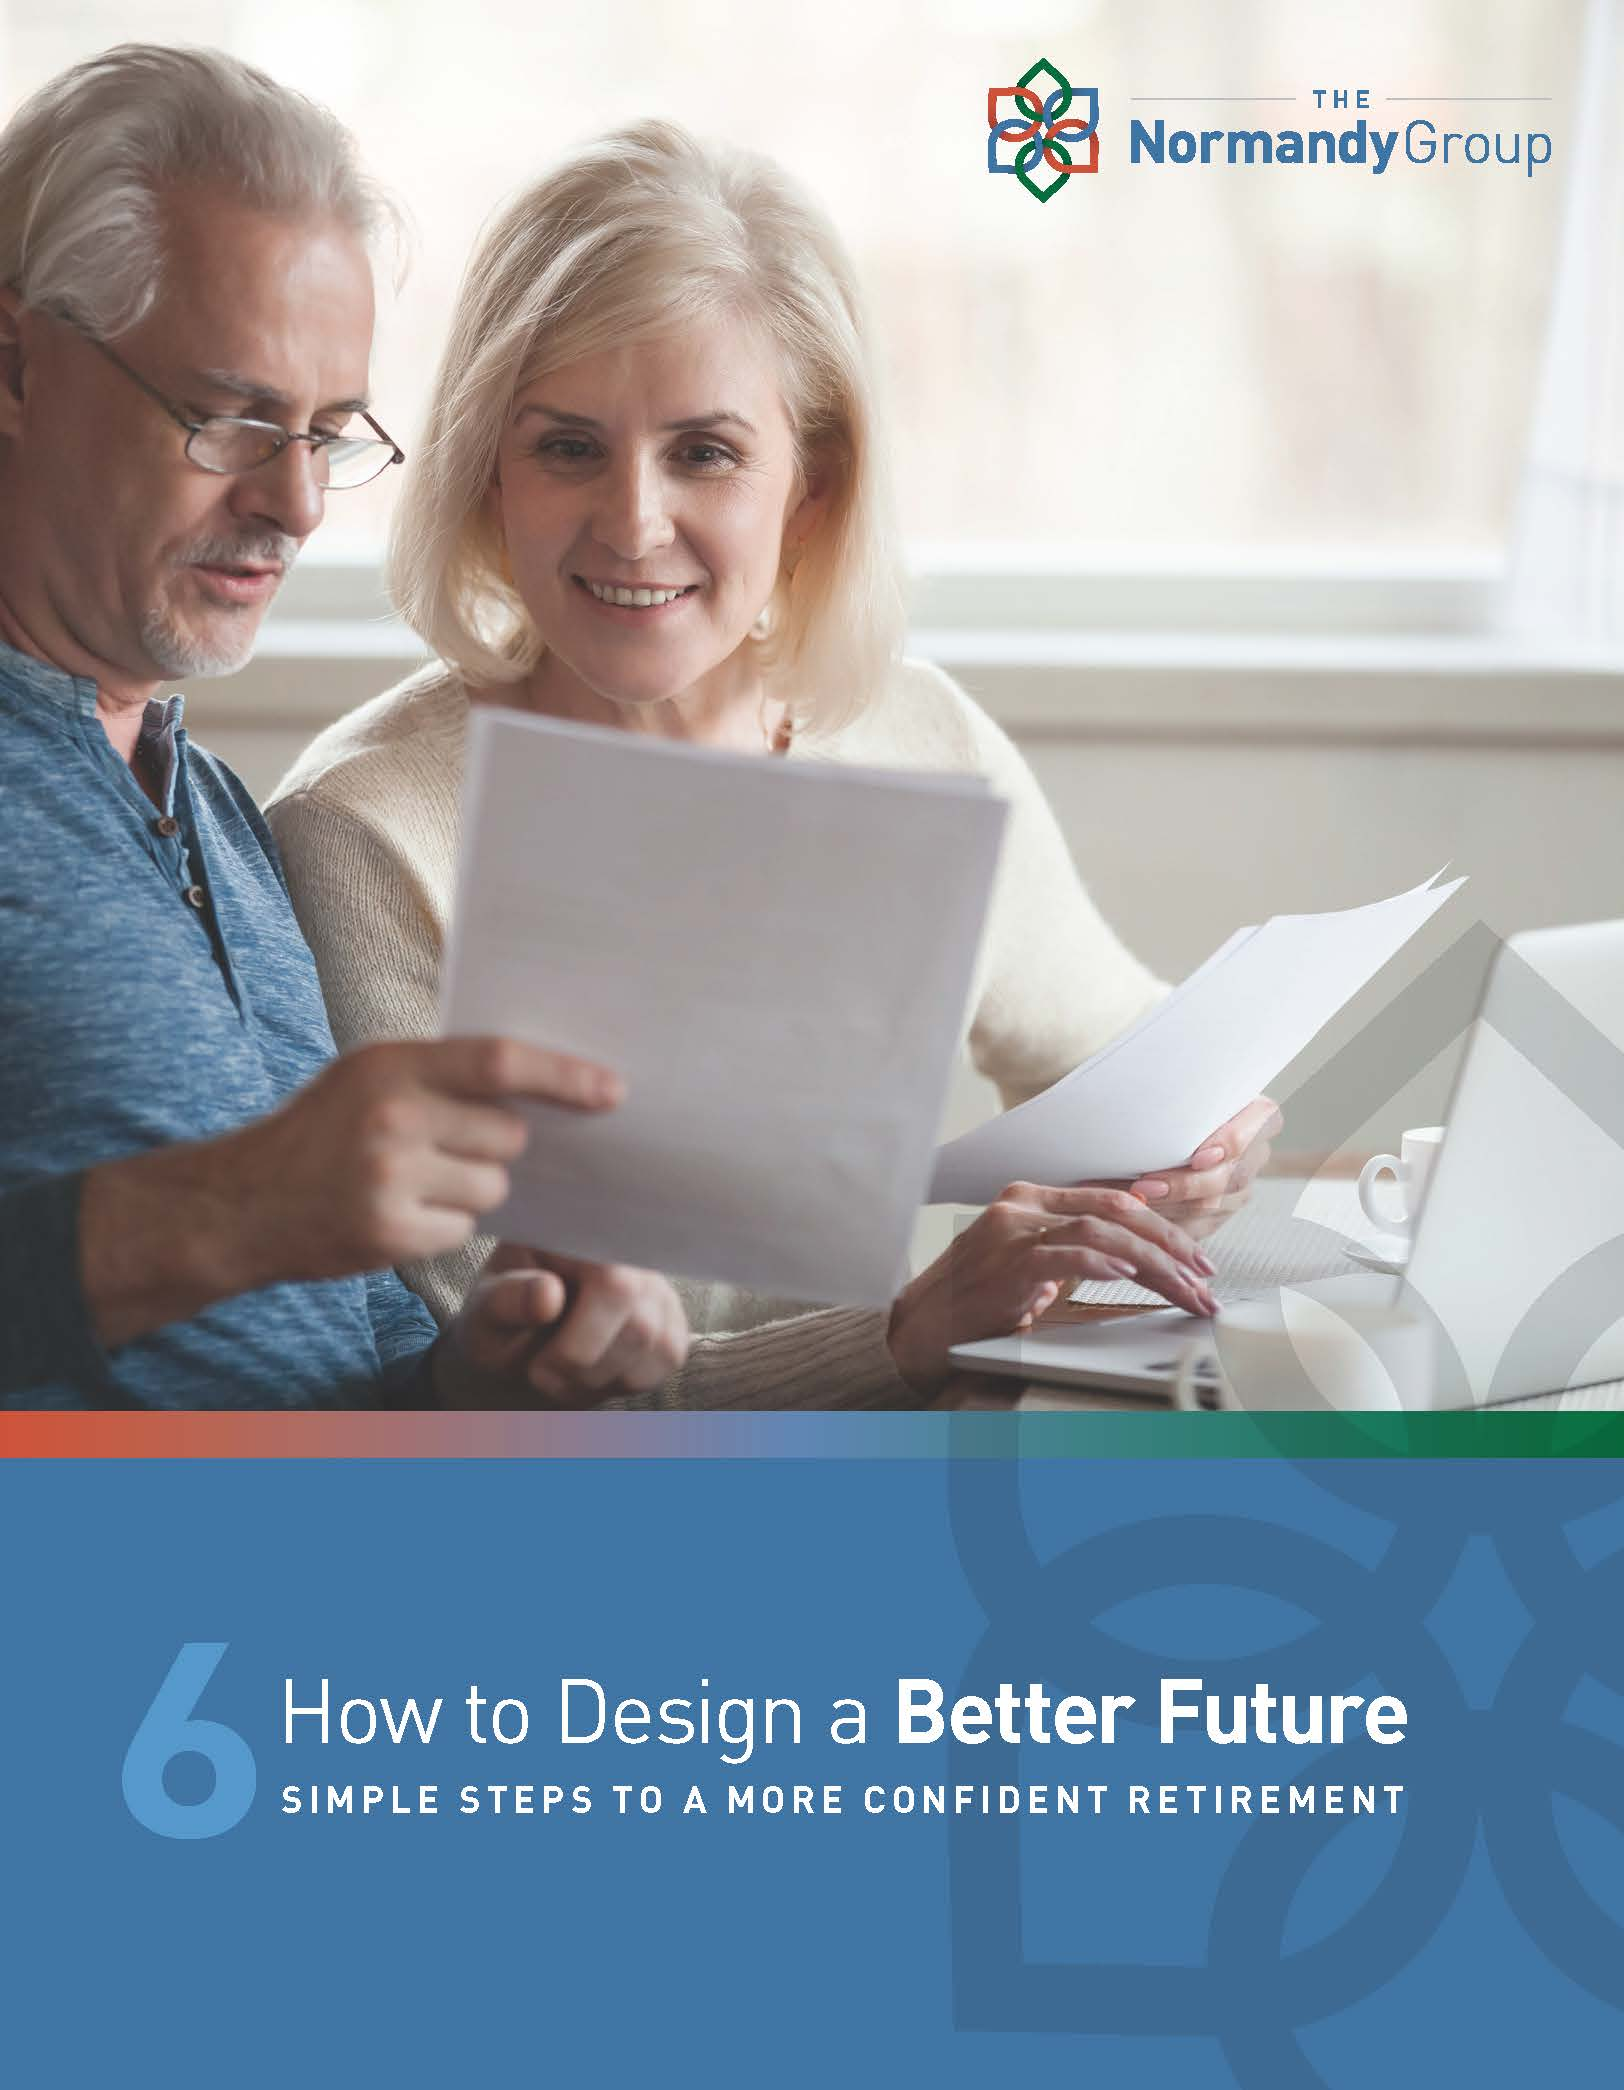 How to Design a Better Future